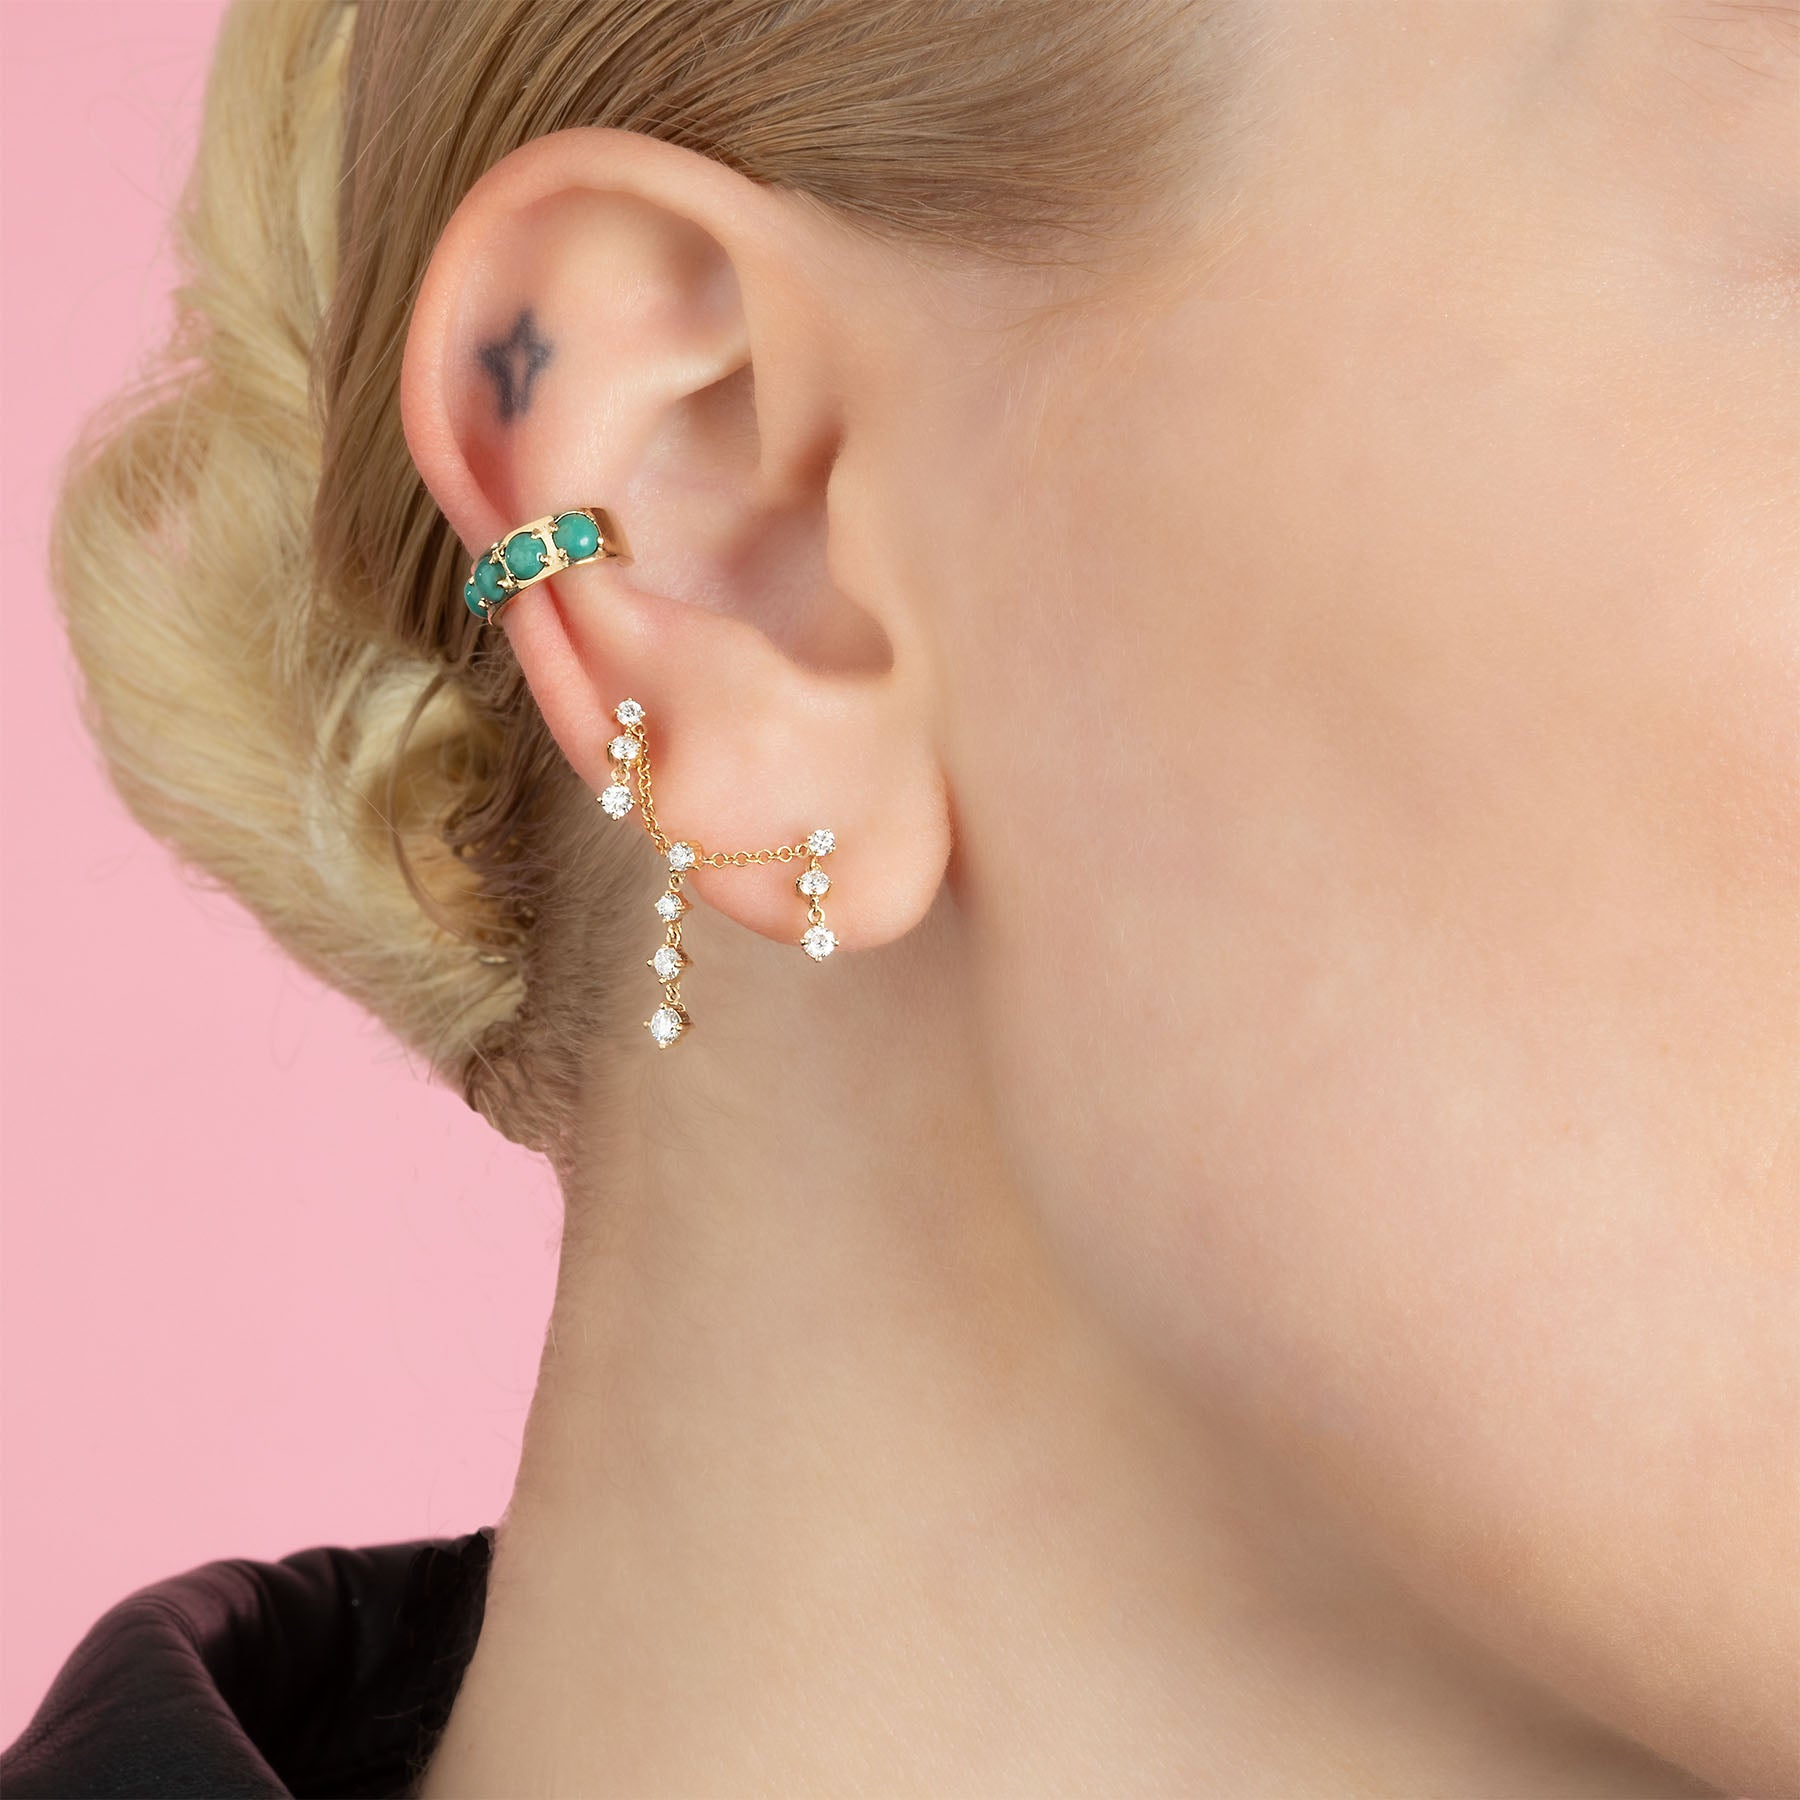 DIAMOND CONNECTED DROPLET EARRING